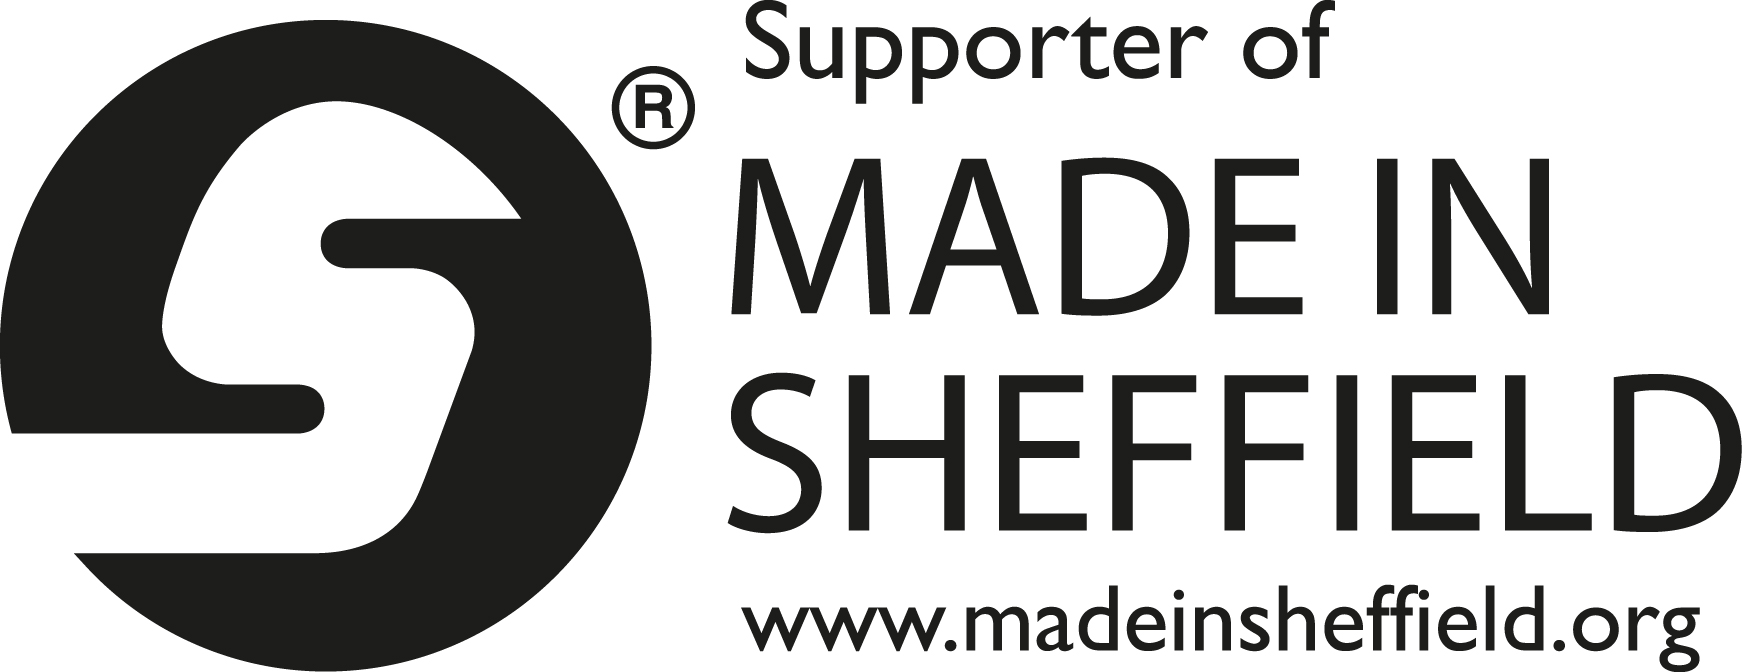 Supporter of Made in Sheffield logo